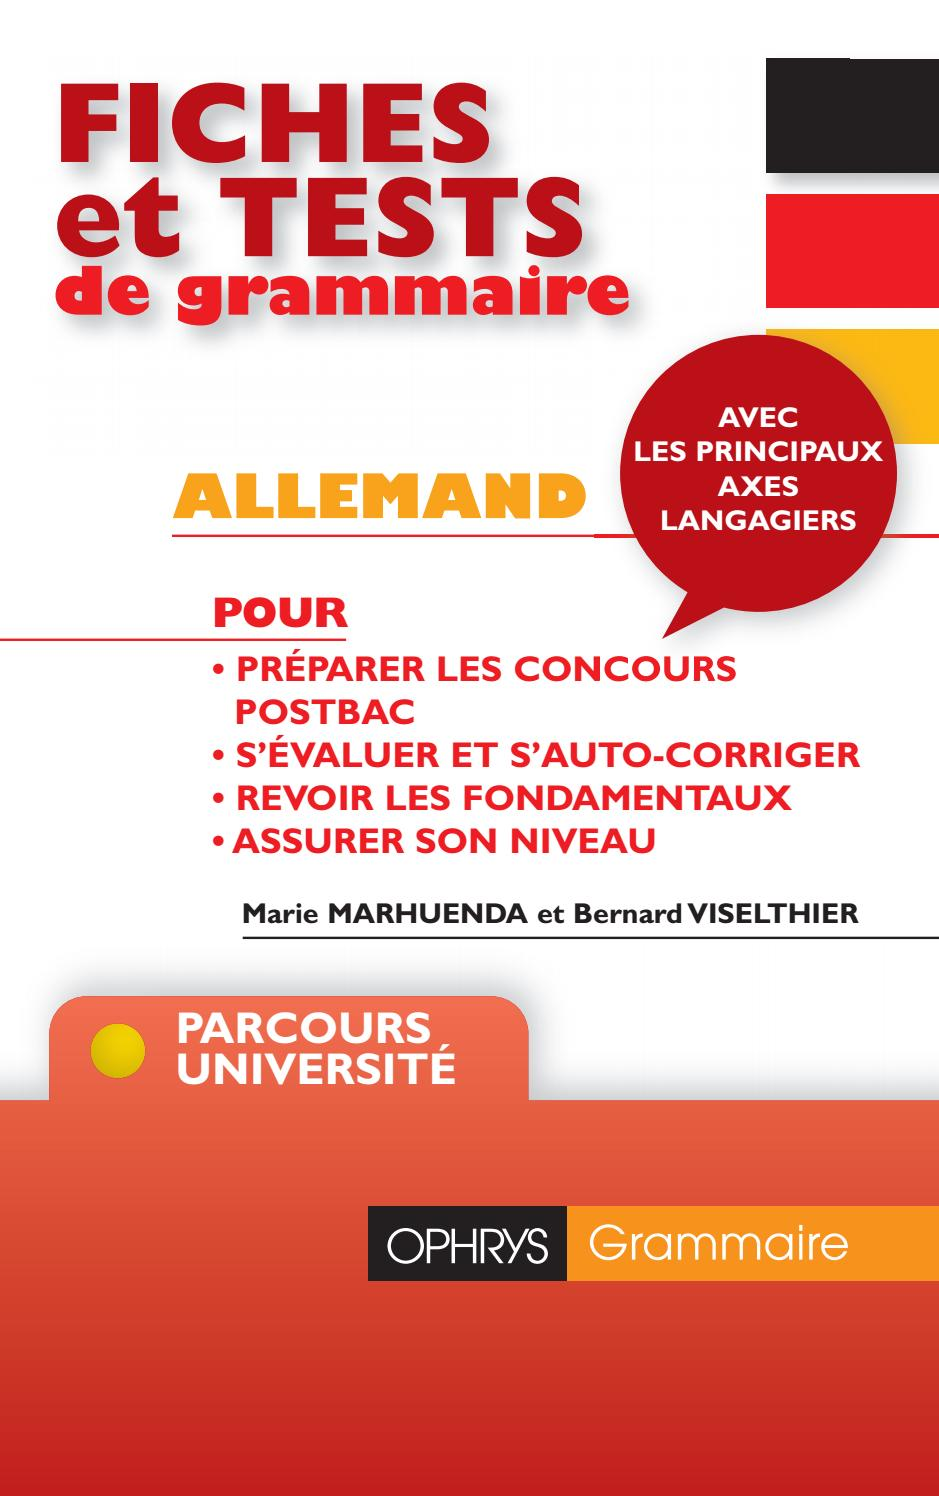 Fiches Et Tests De Grammaire Allemand B Viselthier M Marhuenda Editions Ophrys By To Groupe Issuu